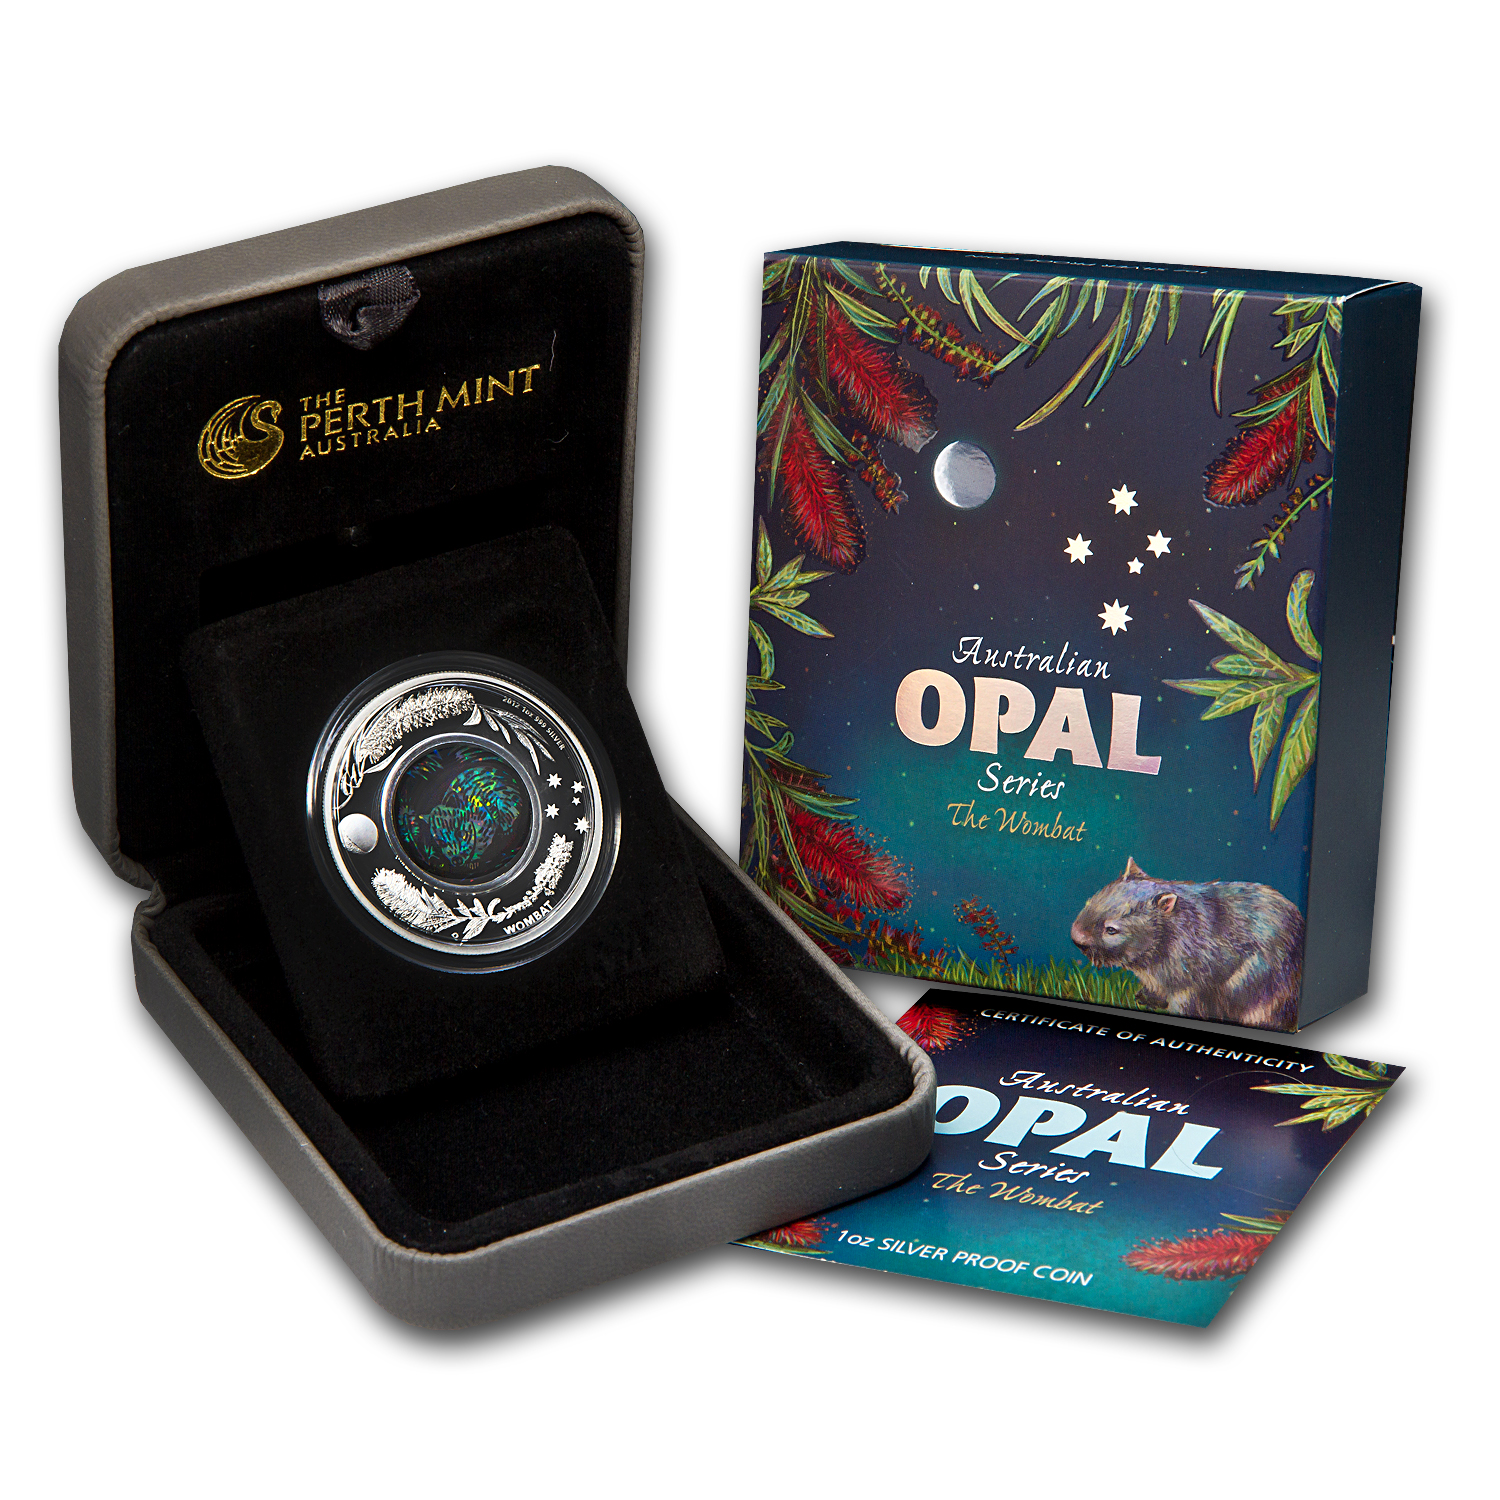 2012 1 oz Proof Silver The Wombat- Australian Opal Series